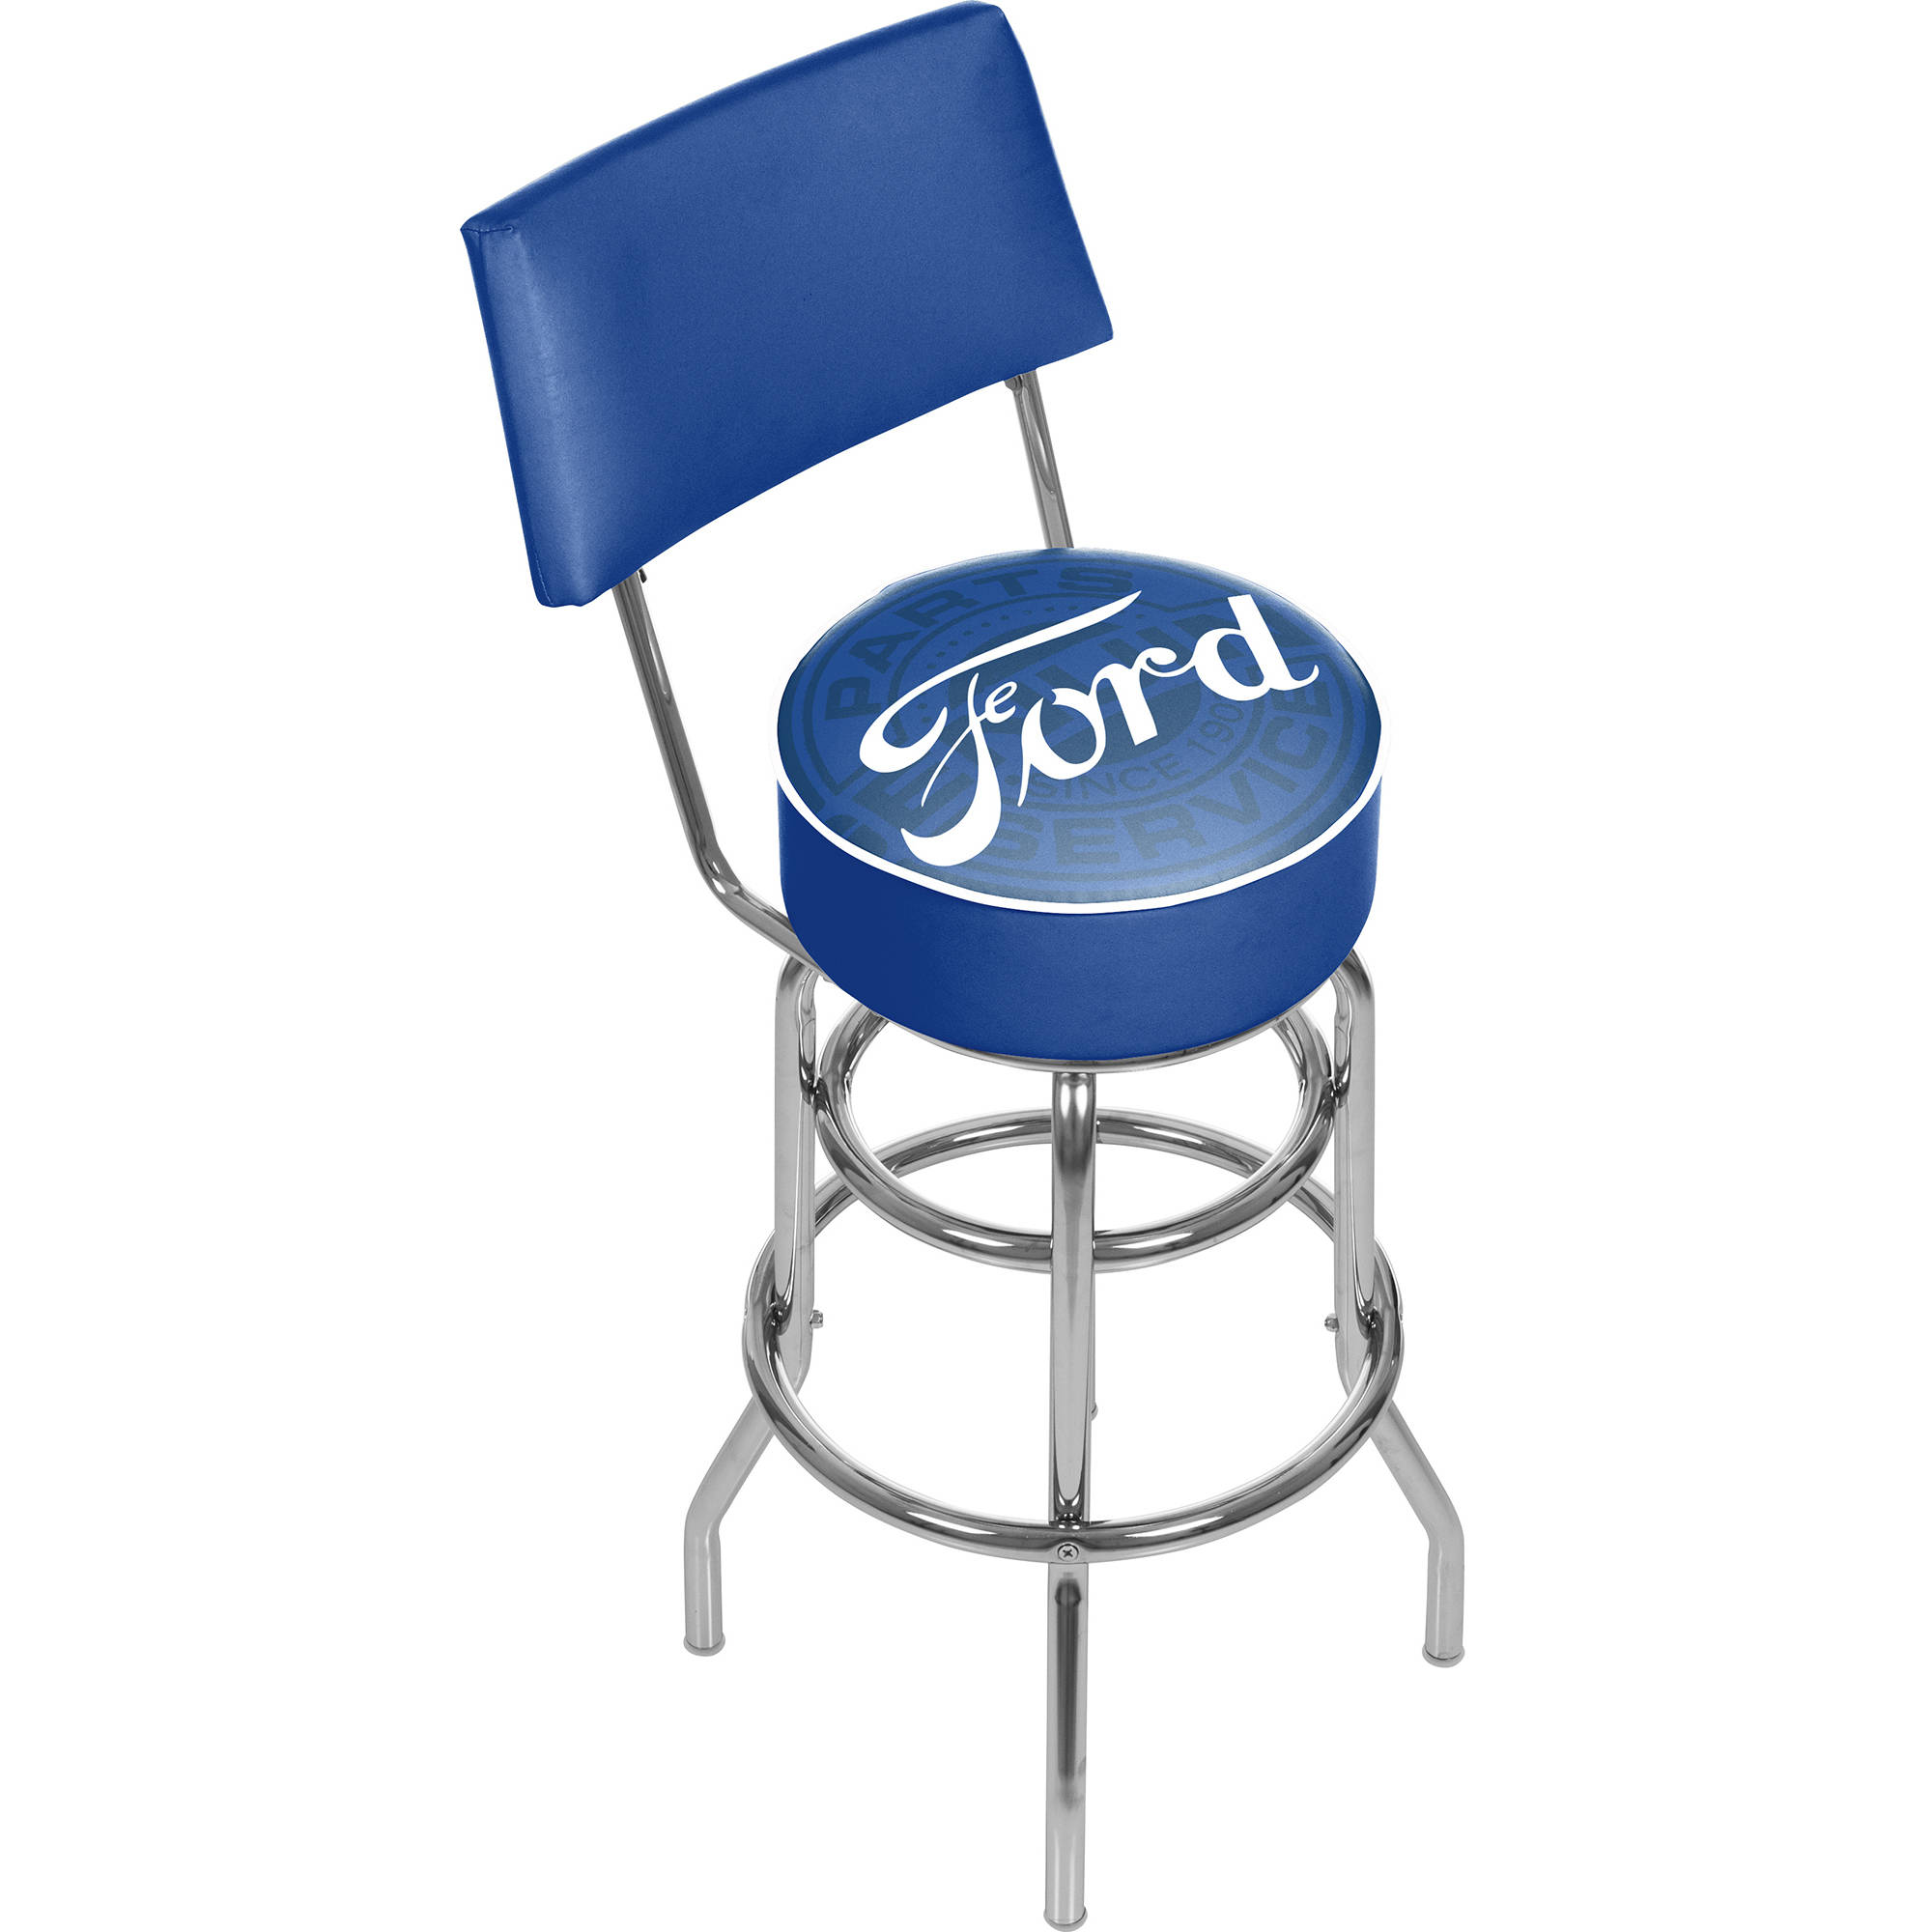 Ford Swivel Bar Stool with Back, Ford Genuine Parts